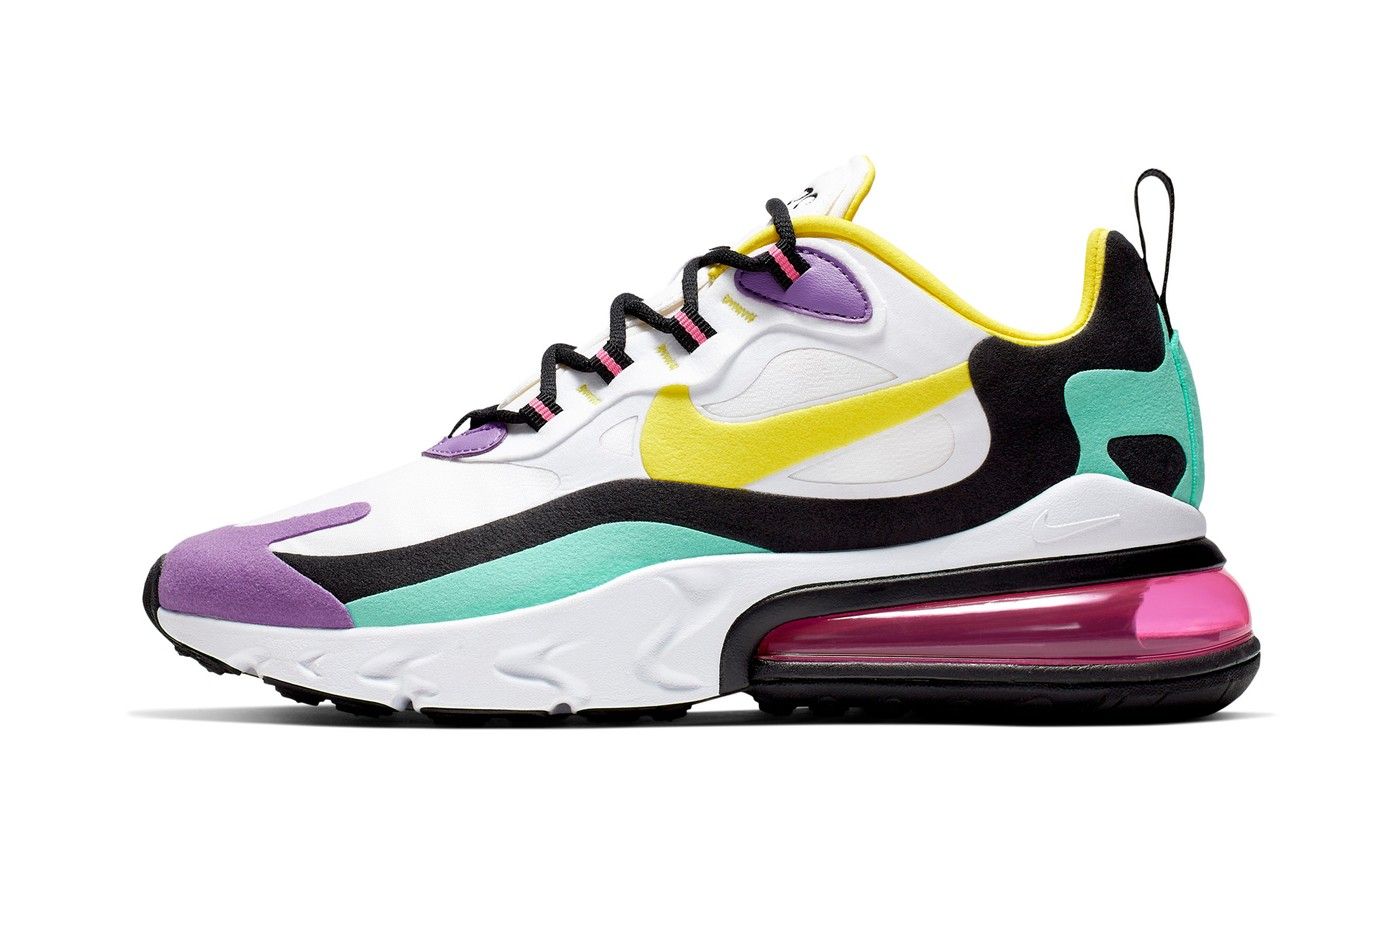 d91d6f62 The Air Max 270 React makes its debut at retailers globally and online  beginning July 3. See the initial colorways expected to launch throughout  Summer 2019 ...